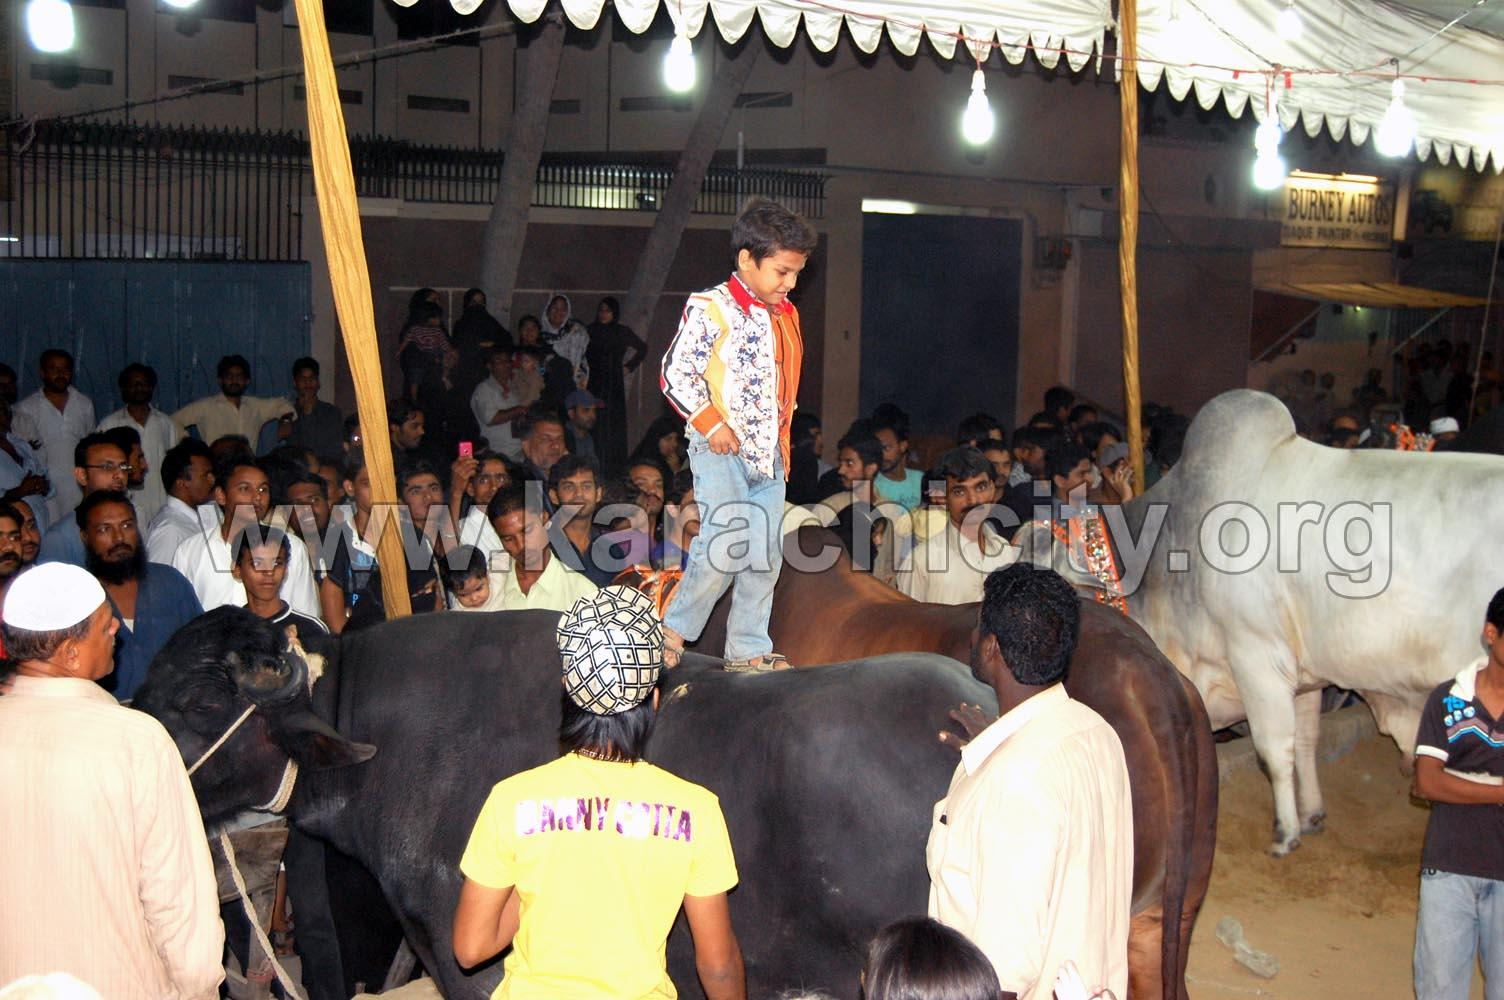 Karachi Big Cow http://pakedu.net/pakistani-education-news/bakra-online-bakra-mandi-online/